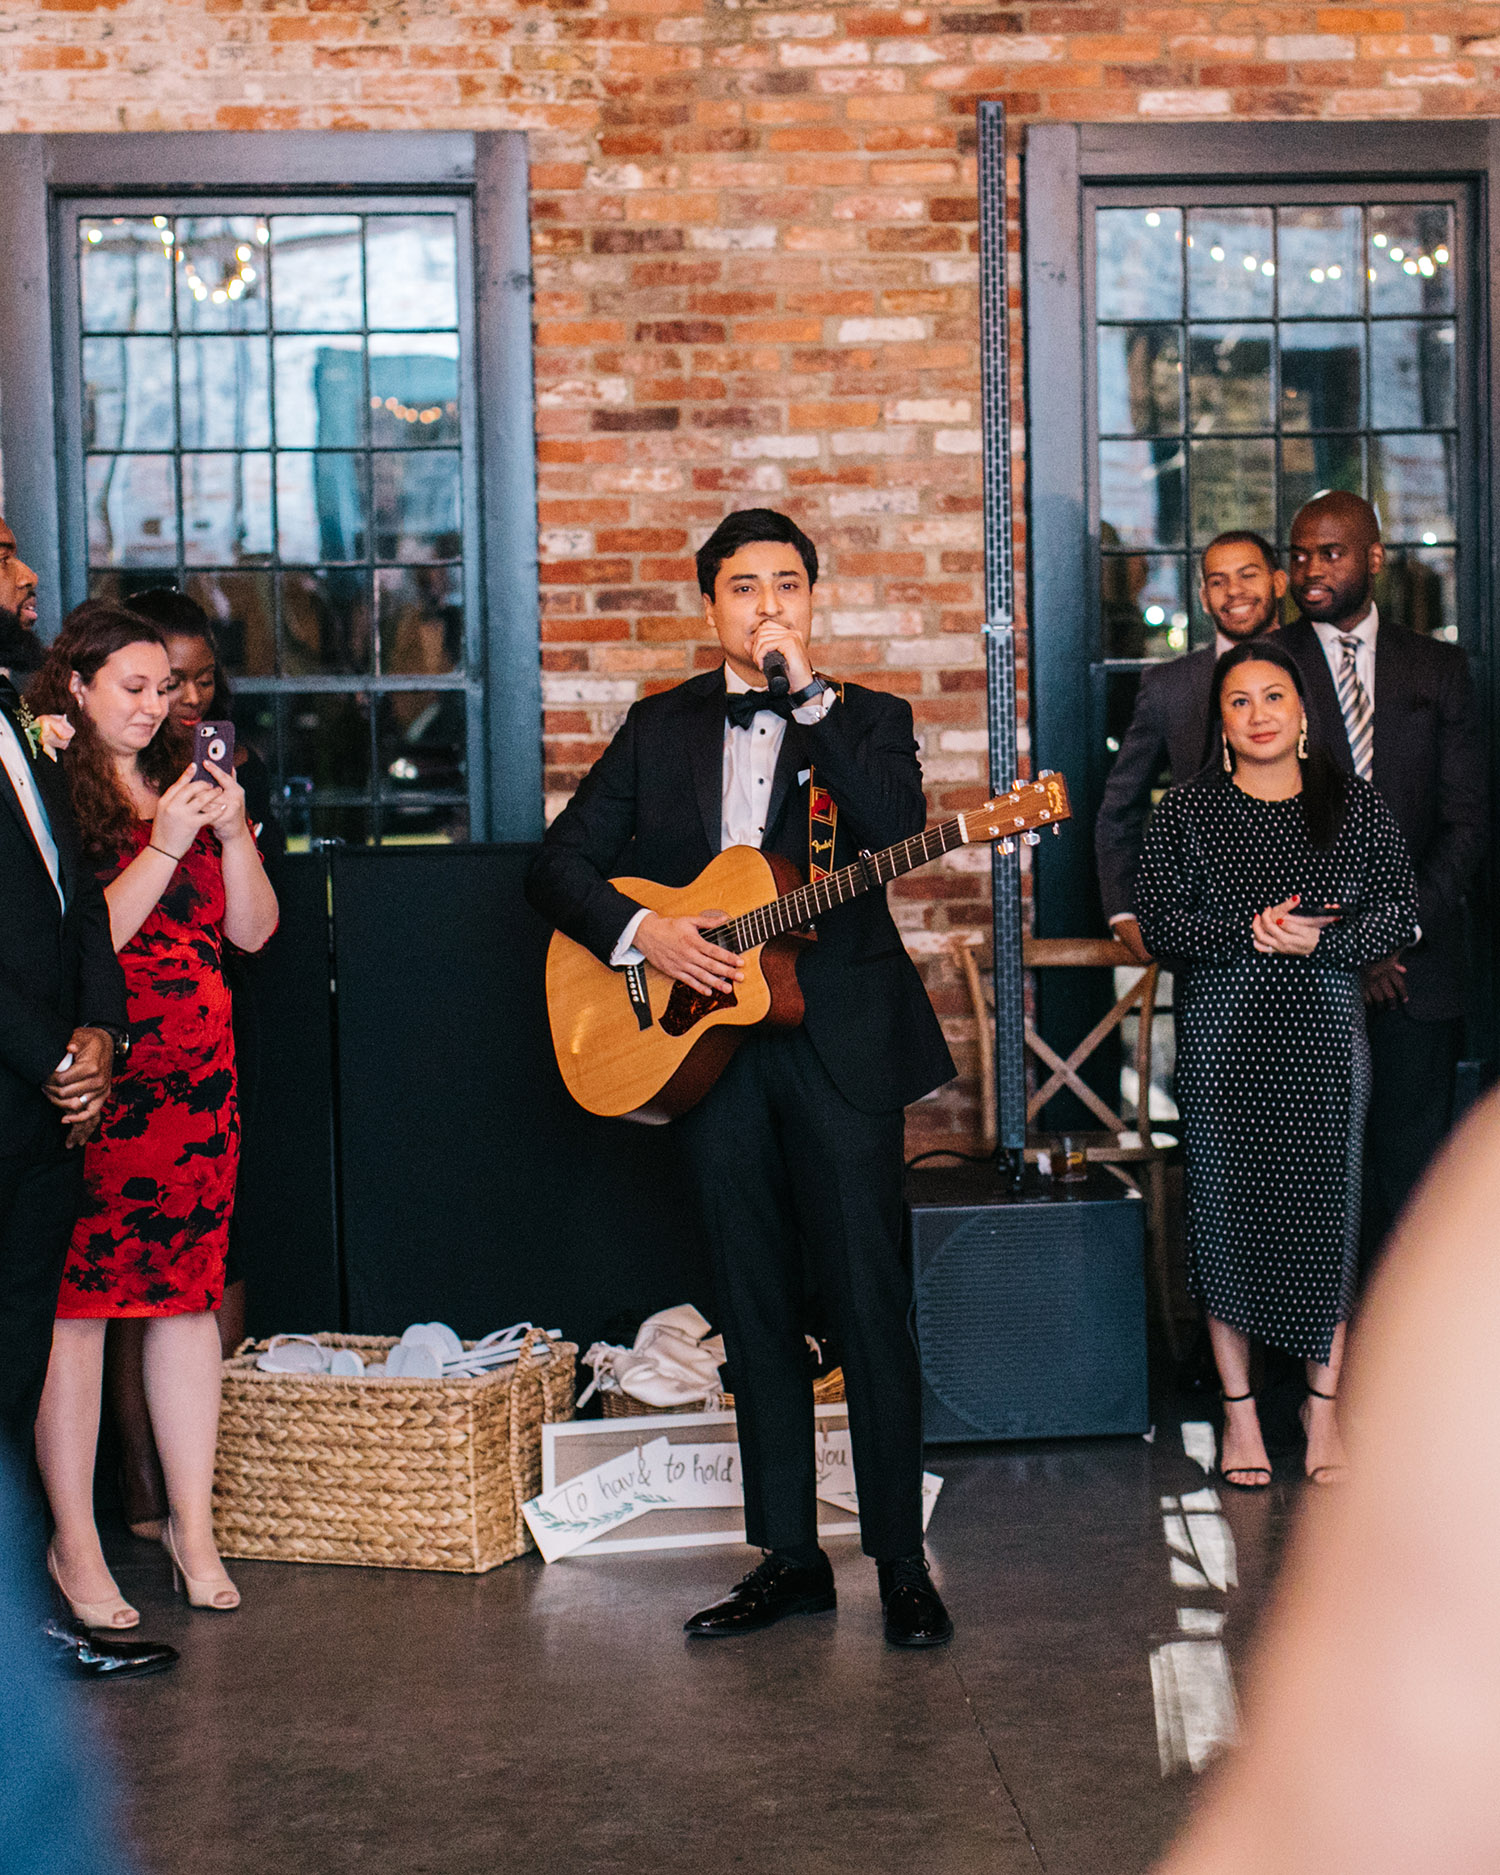 jessica ali wedding brother with guitar